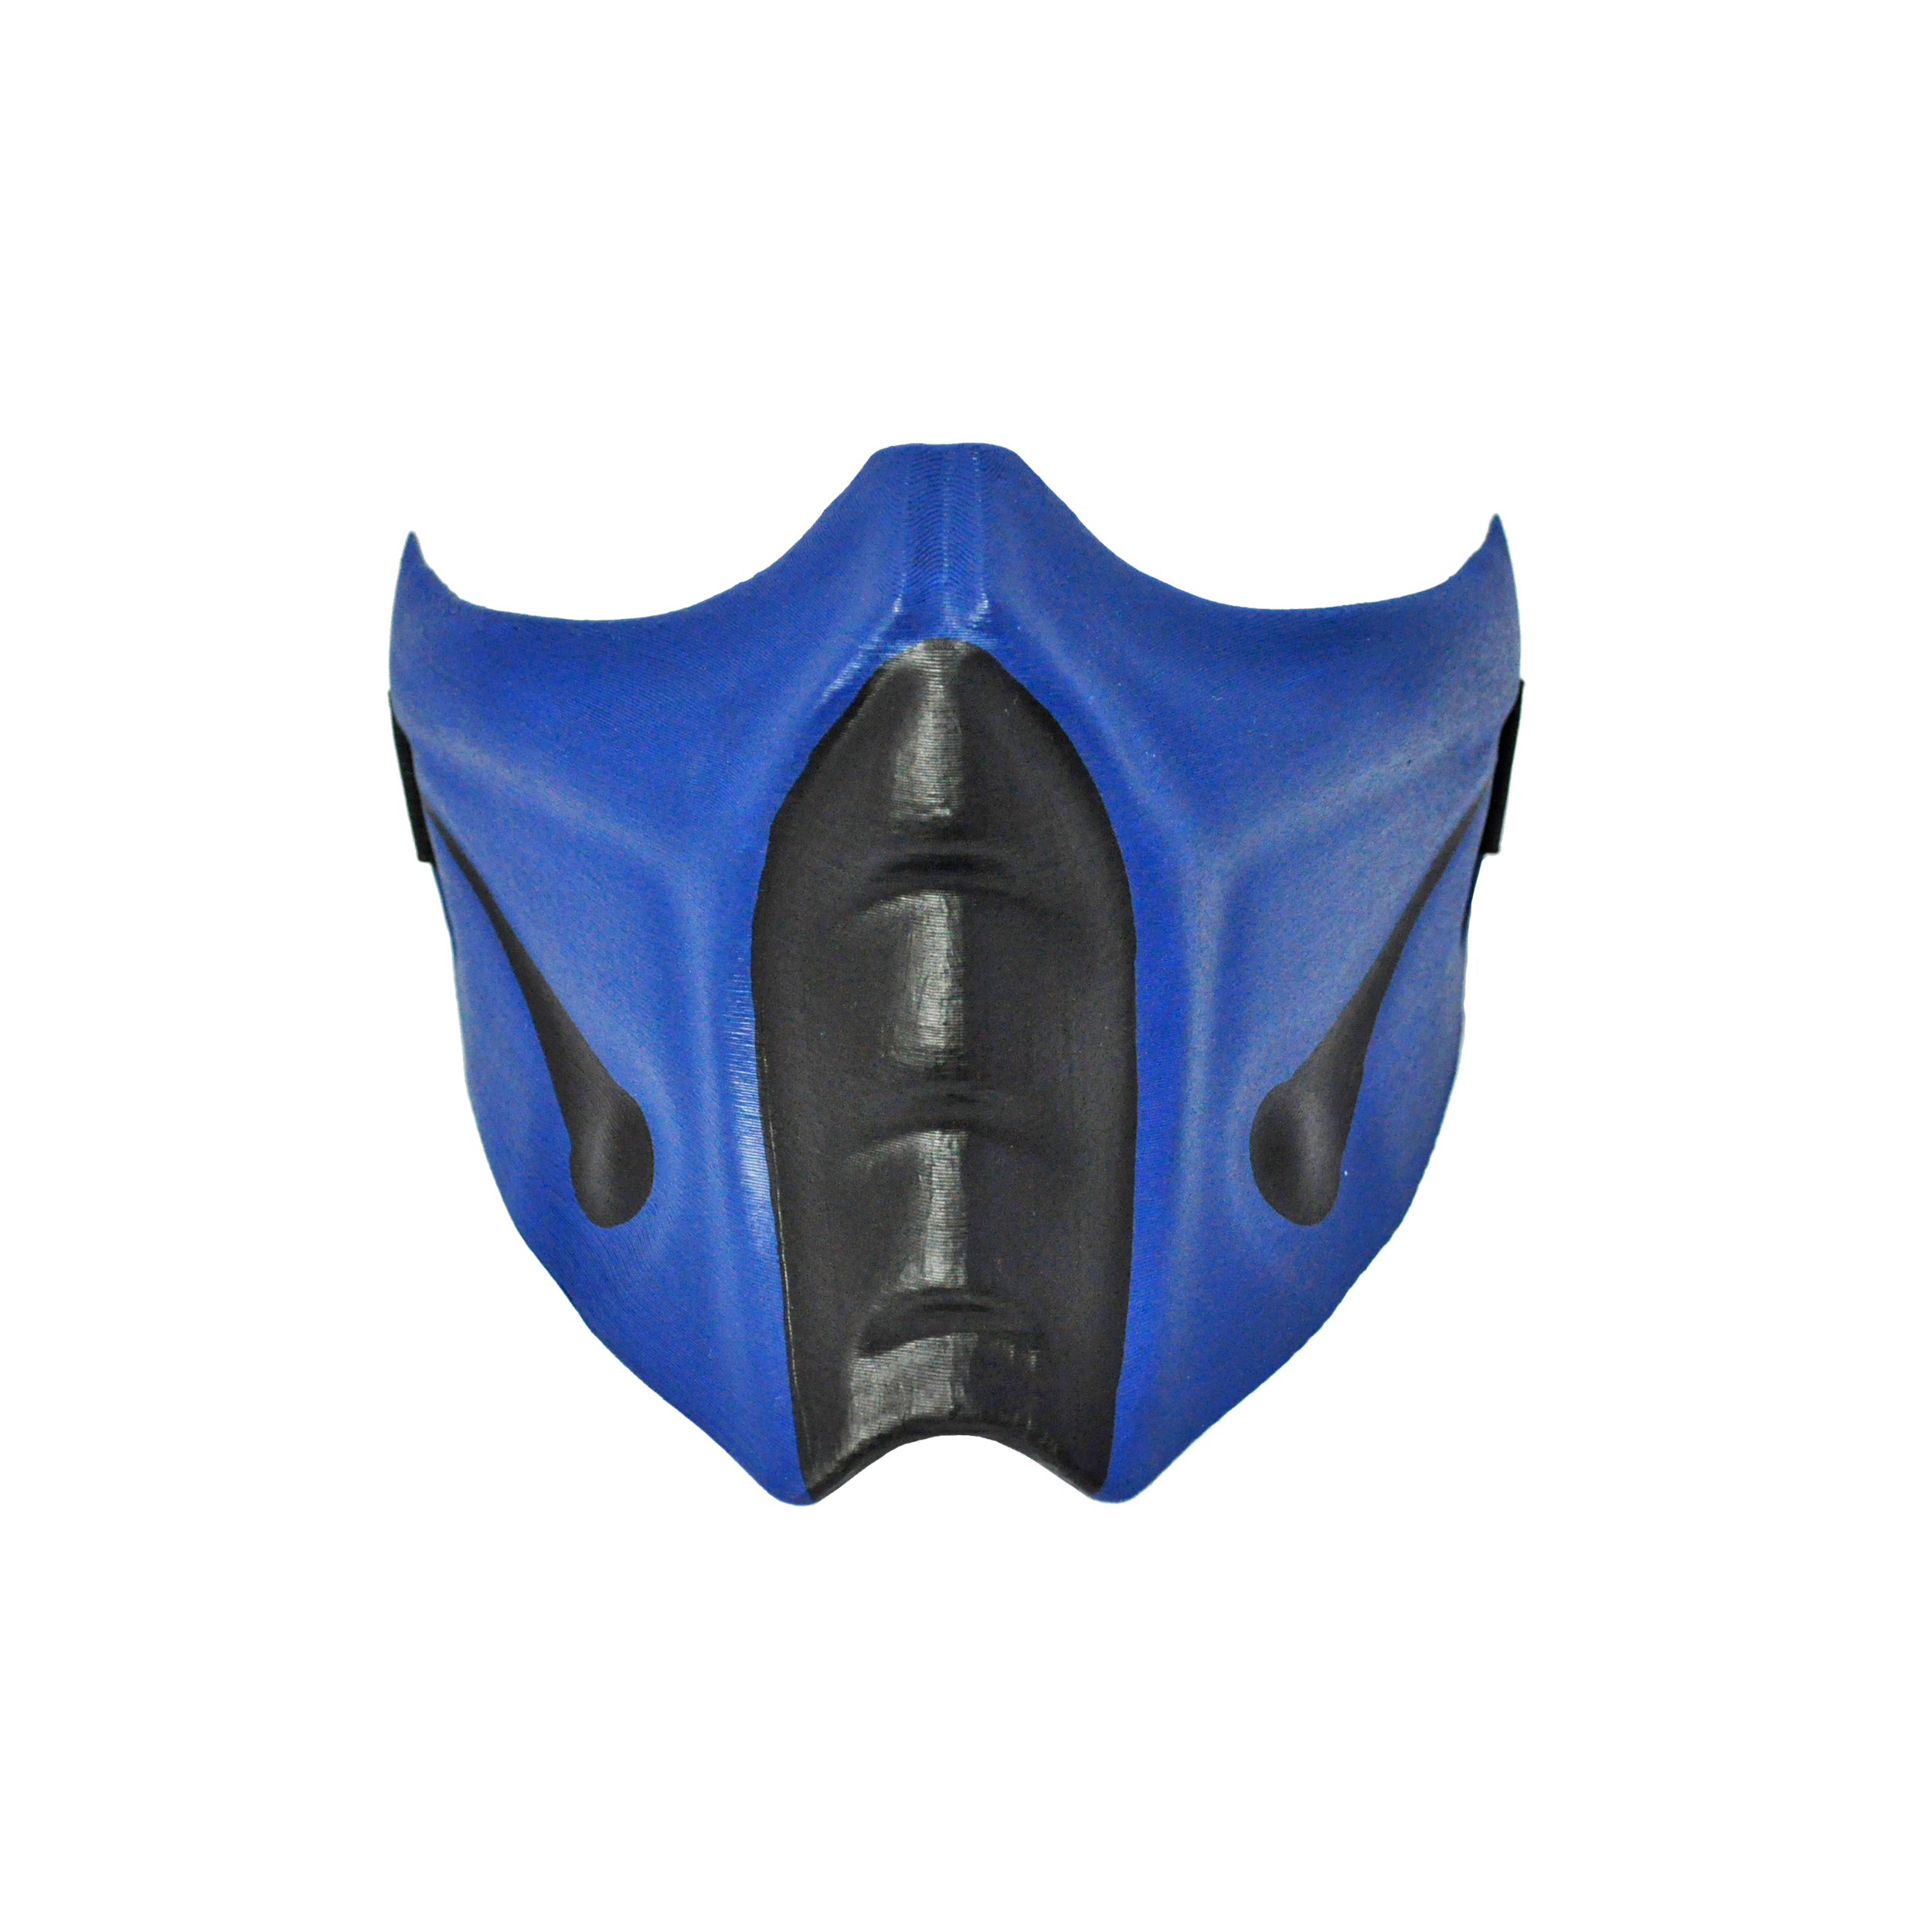 Sub Zero Mask From Mk Cosplay Or Airsoft Mask Costumes From Destiny Star Wars Overwatch Designedby3d Com Airsoft Mask Mask Cosplay